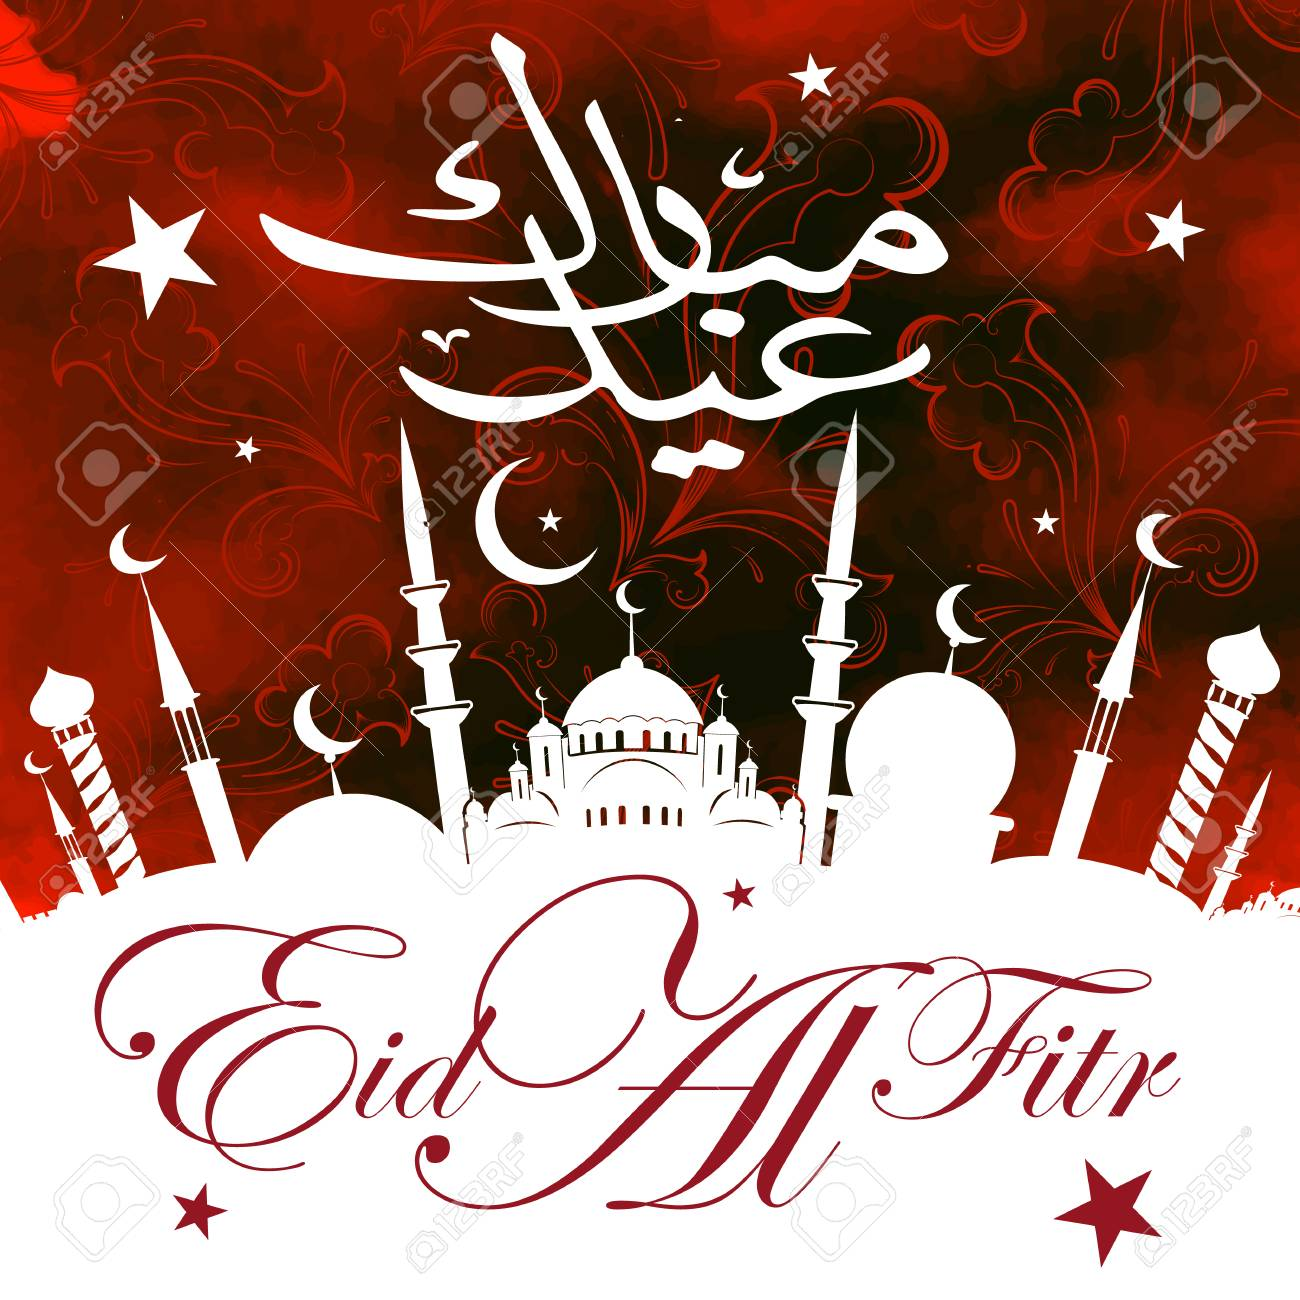 Good Arabic Eid Al-Fitr Feast - 78757626-calligraphy-of-arabic-text-eid-al-fitr-feast-of-breaking-the-fast-holiday-greeting-card-in-retro-sty  Image_584852 .jpg